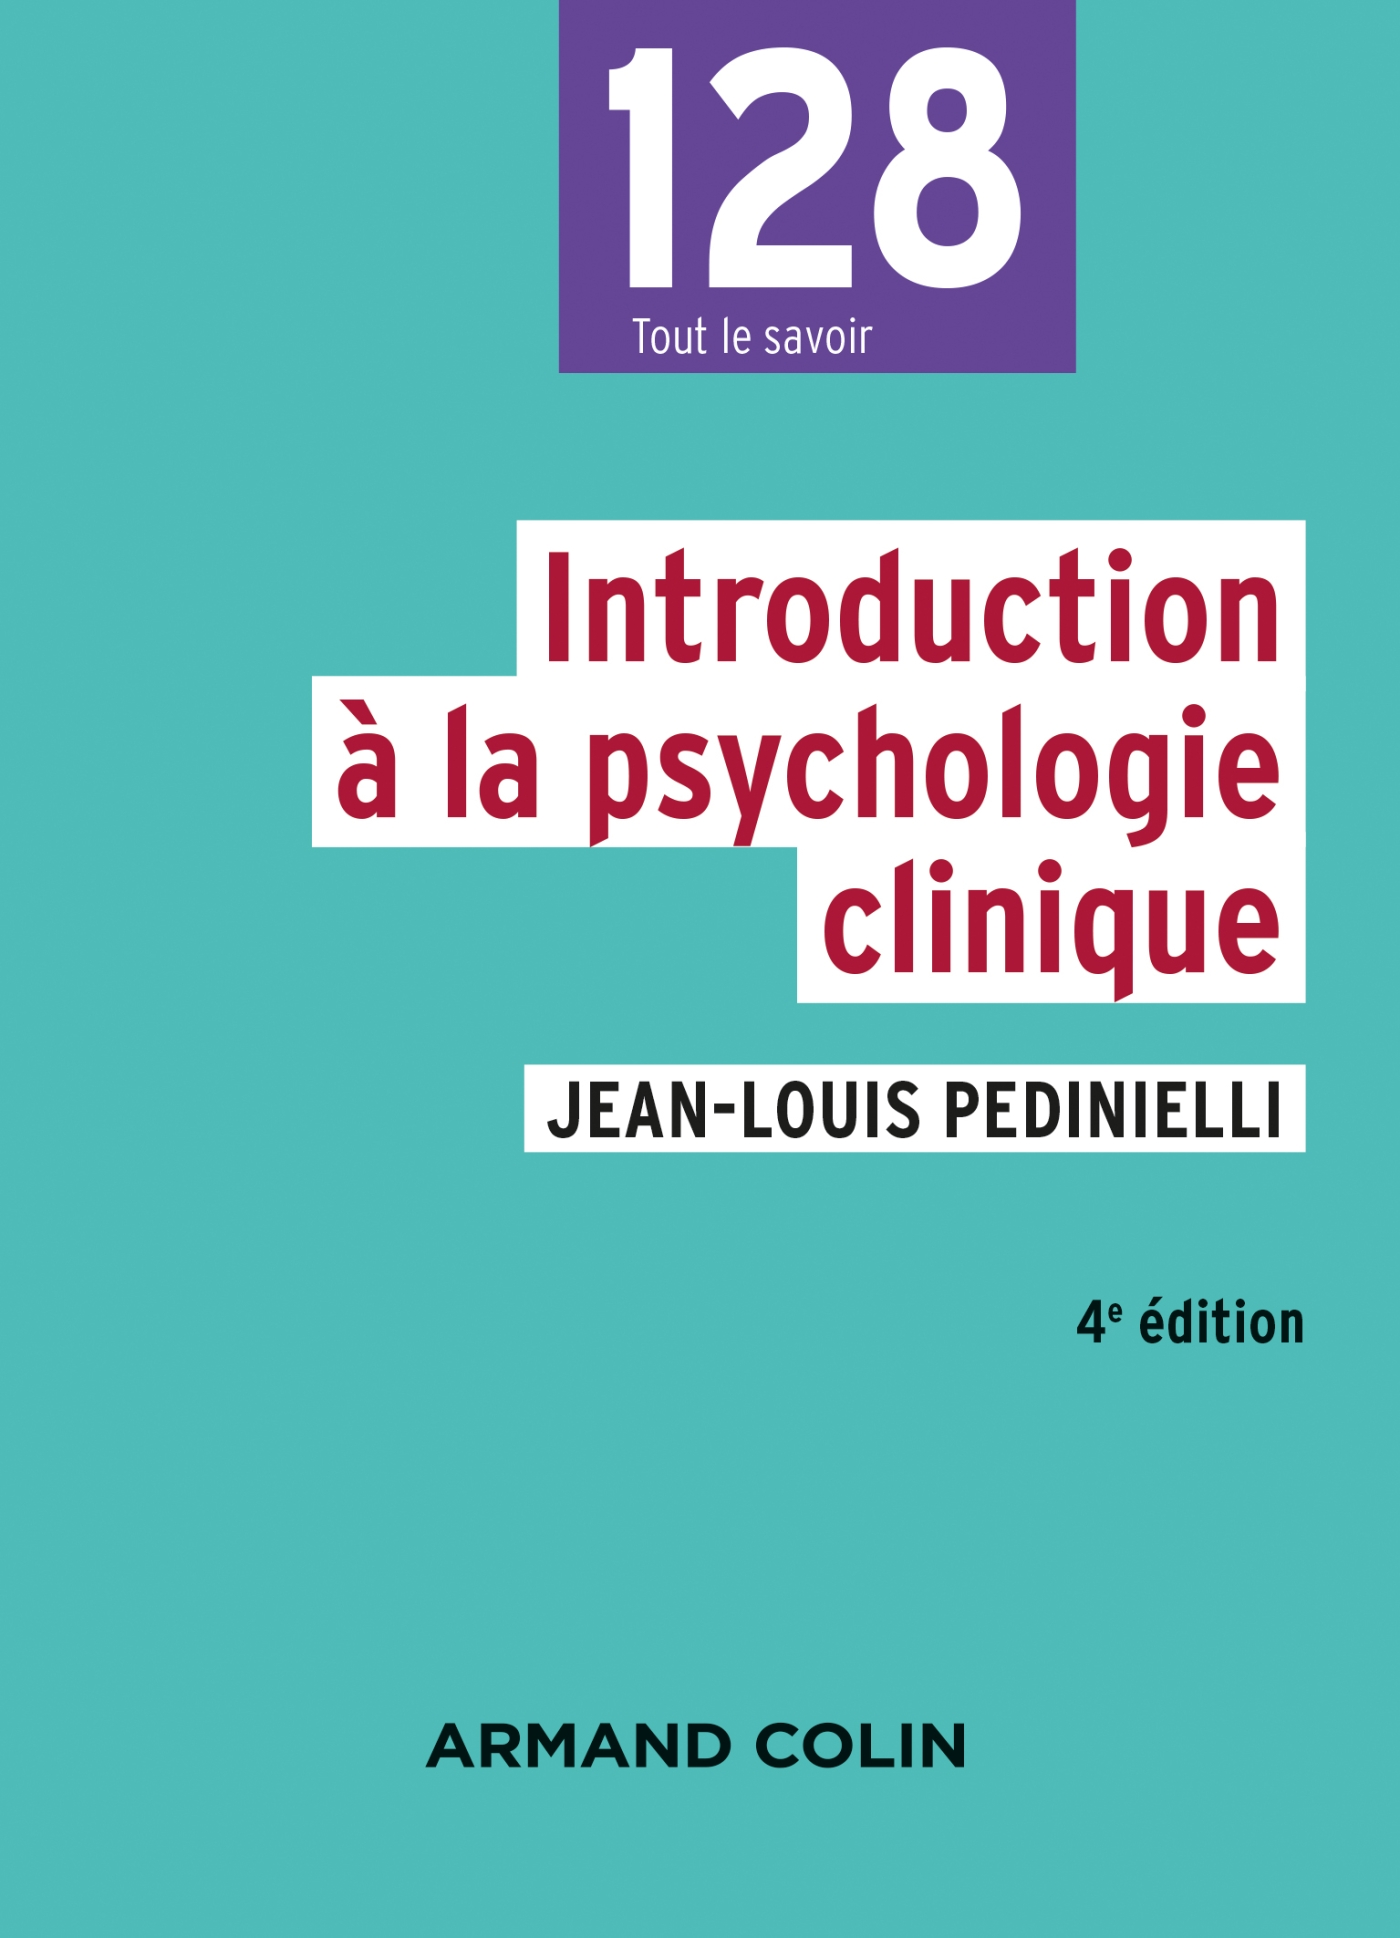 Introduction à la psychologie clinique - 4e éd.